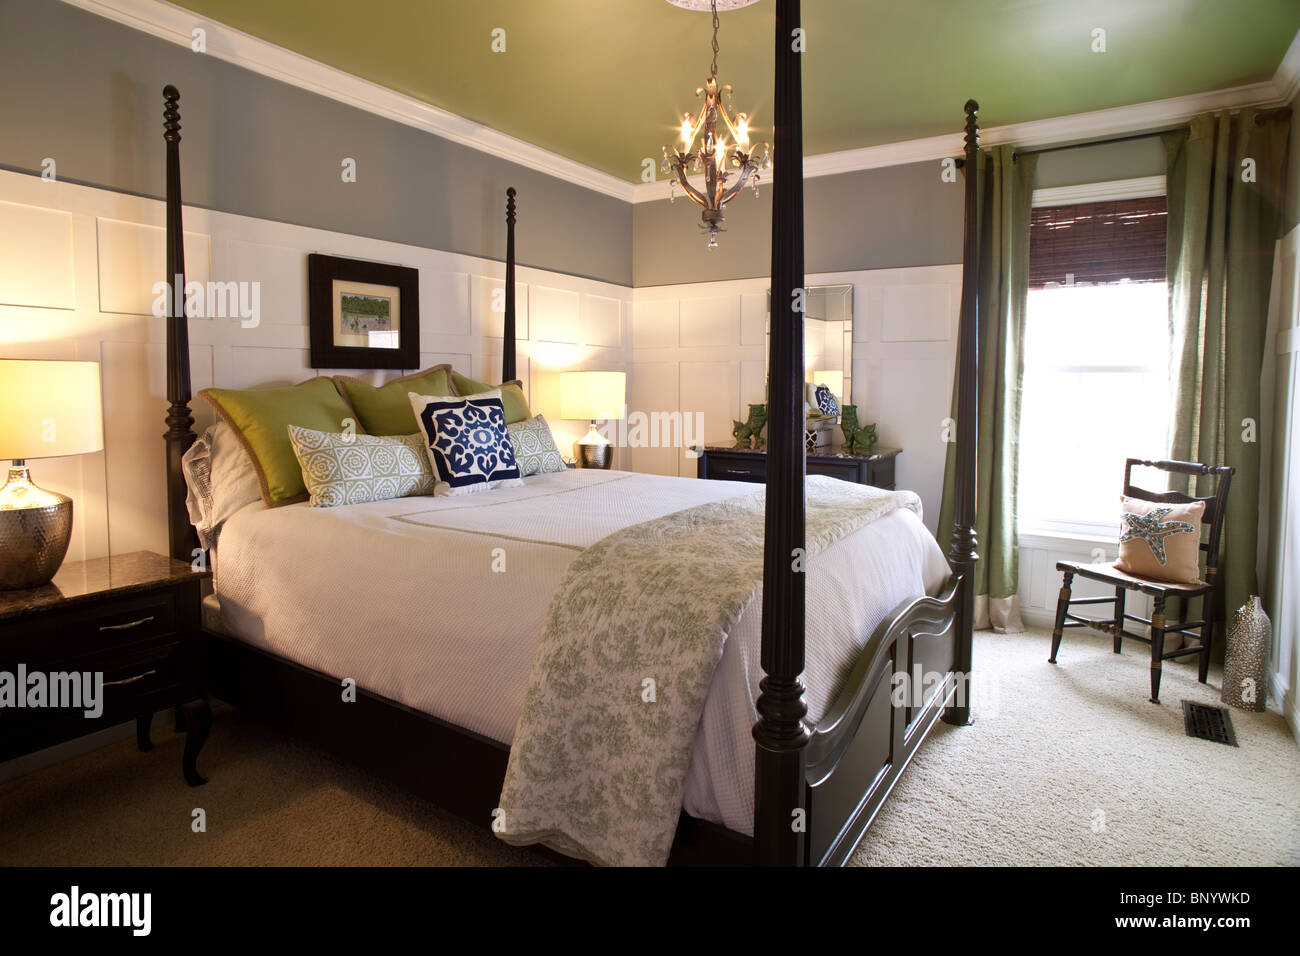 productimage china furniture wooden bedroom america designs home vjoeoykulawi upholstered bed american style